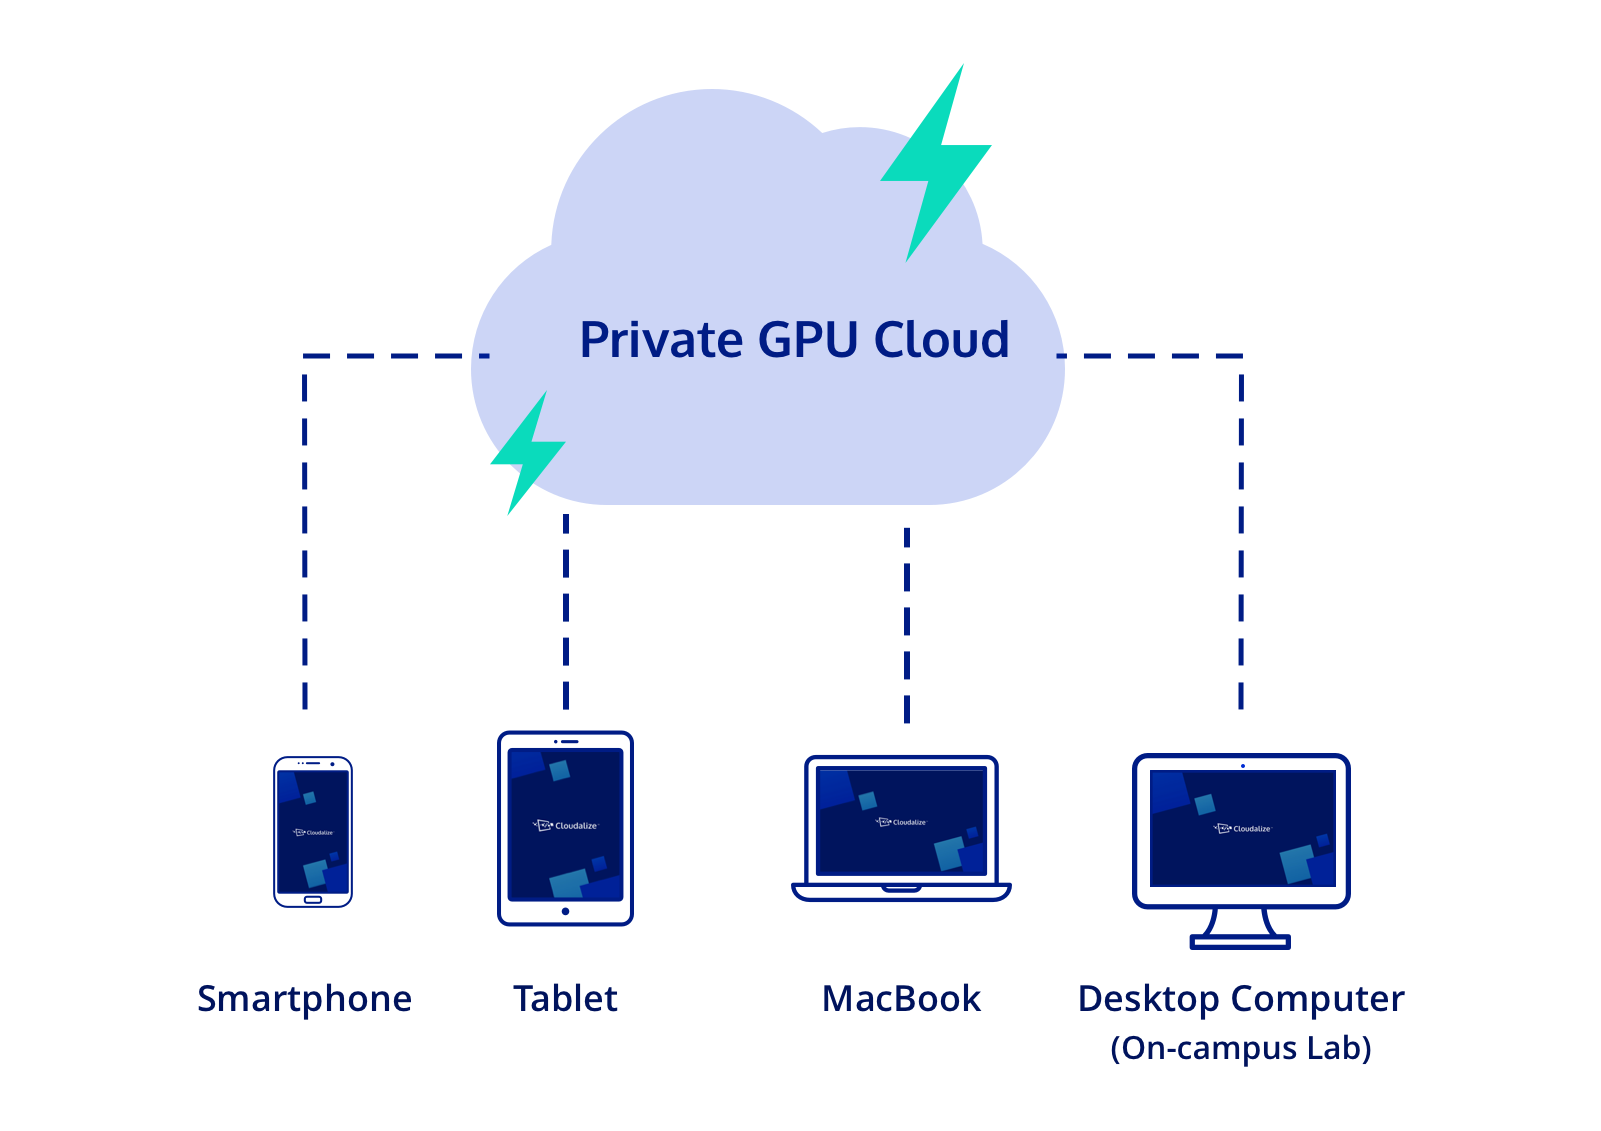 Private GPU Cloud enables you to have a Bring-Your-Own-Device educational policy. Teach and learn from smartphone, tablet, MacBook or Desktop Computer with Private GPU Cloud.